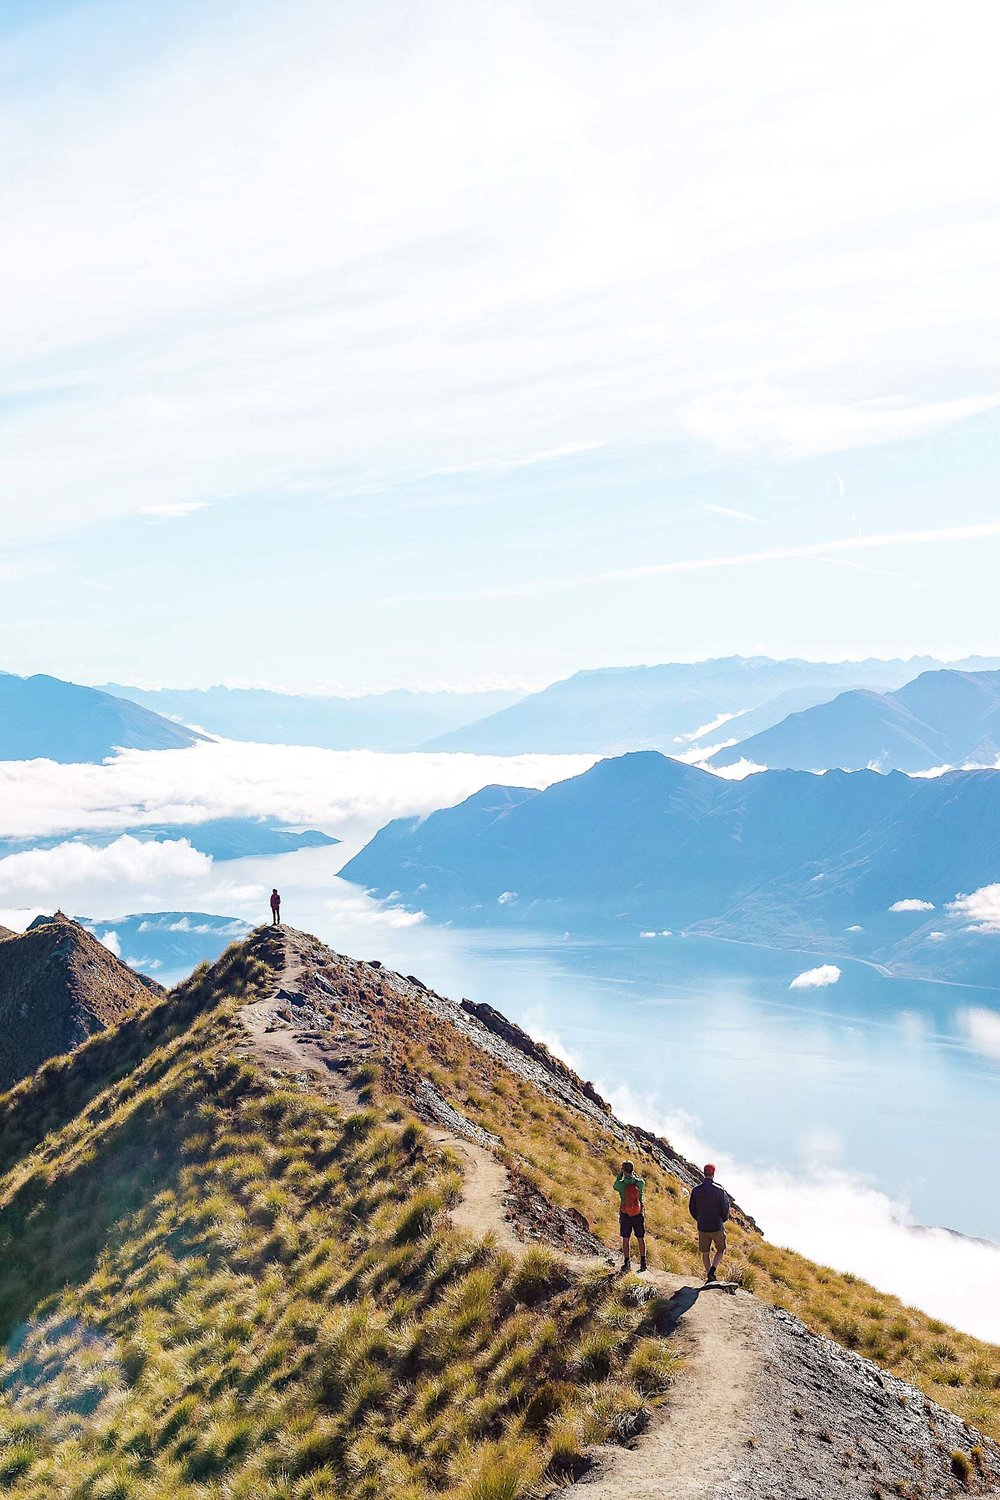 Magnificent views from the top of Roys Peak in Wanaka, New Zealand